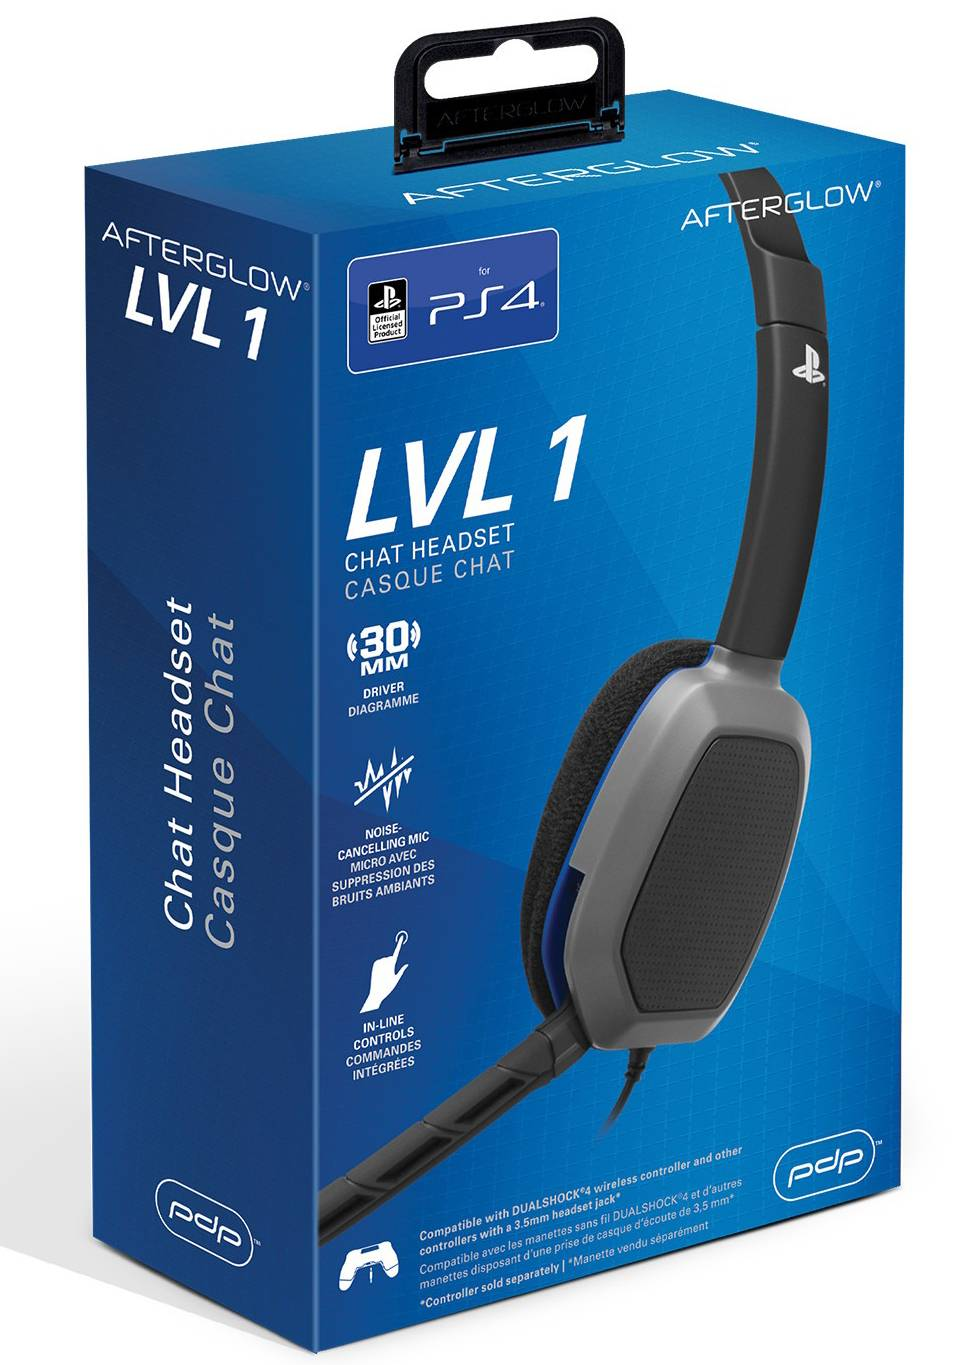 LvL 1 Wired Stereo Headset